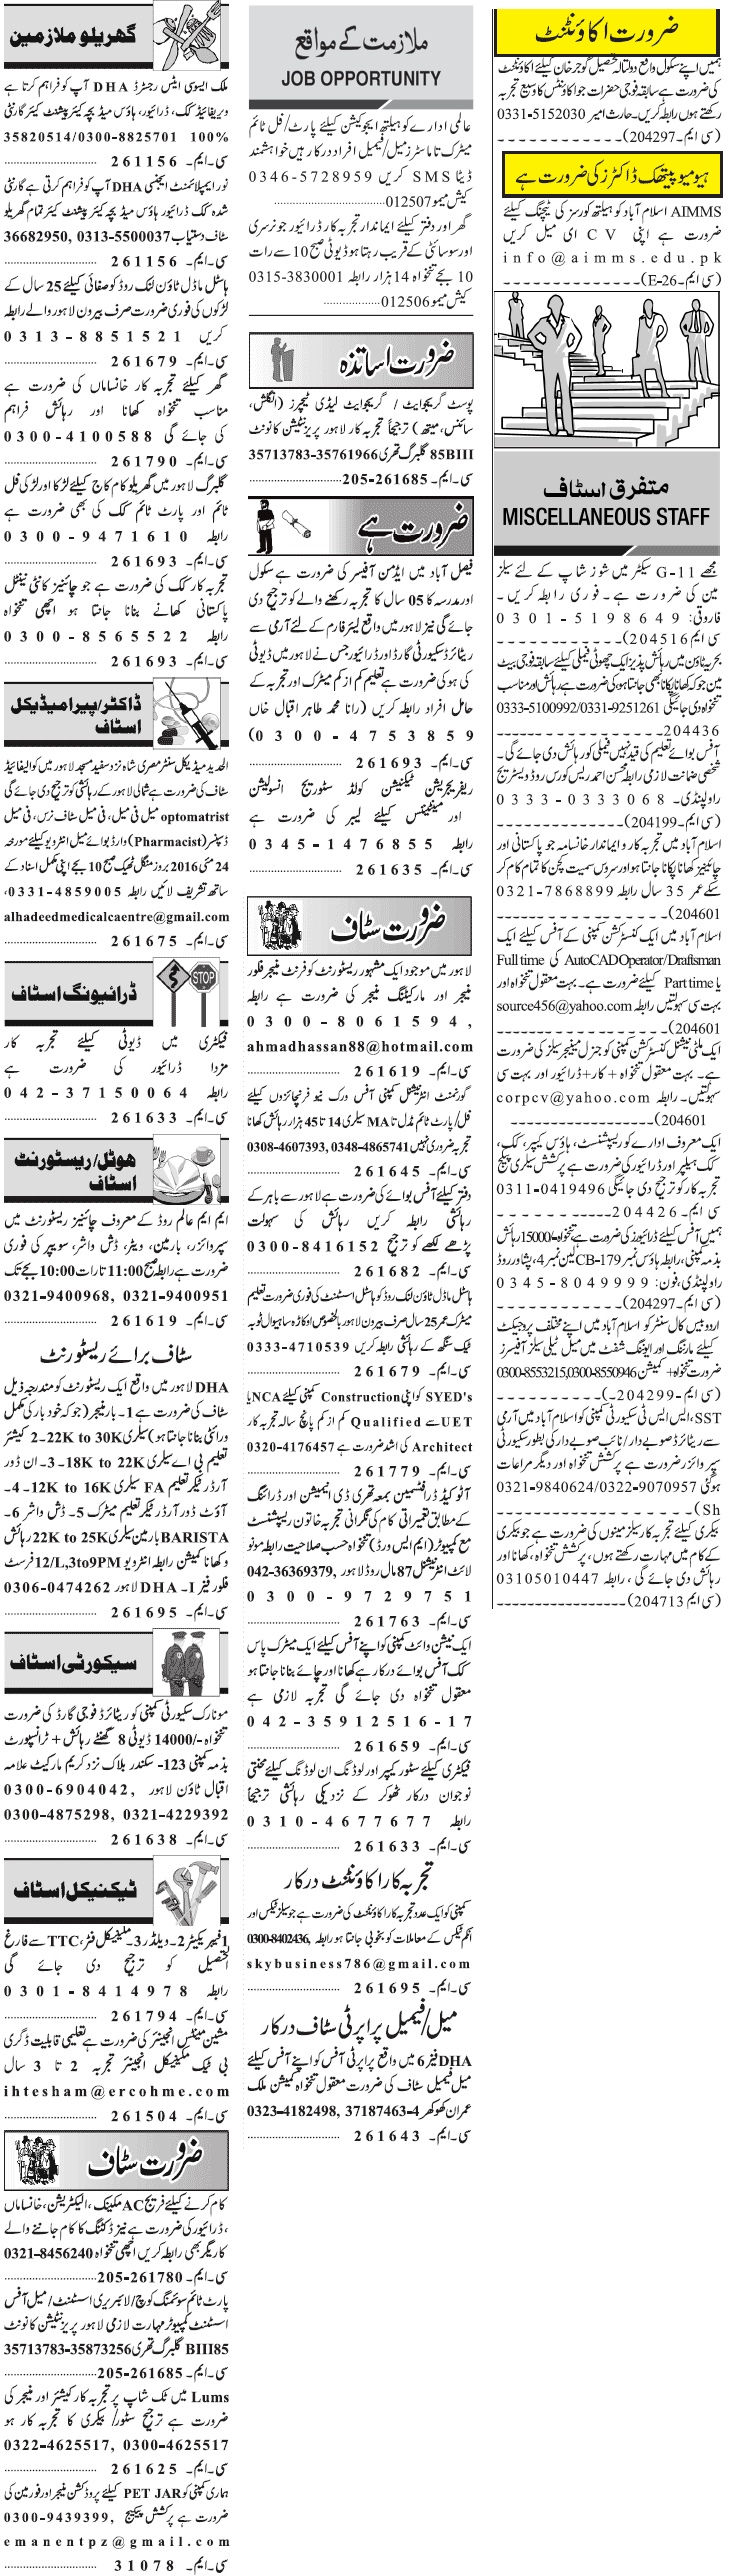 Jang-classifieds